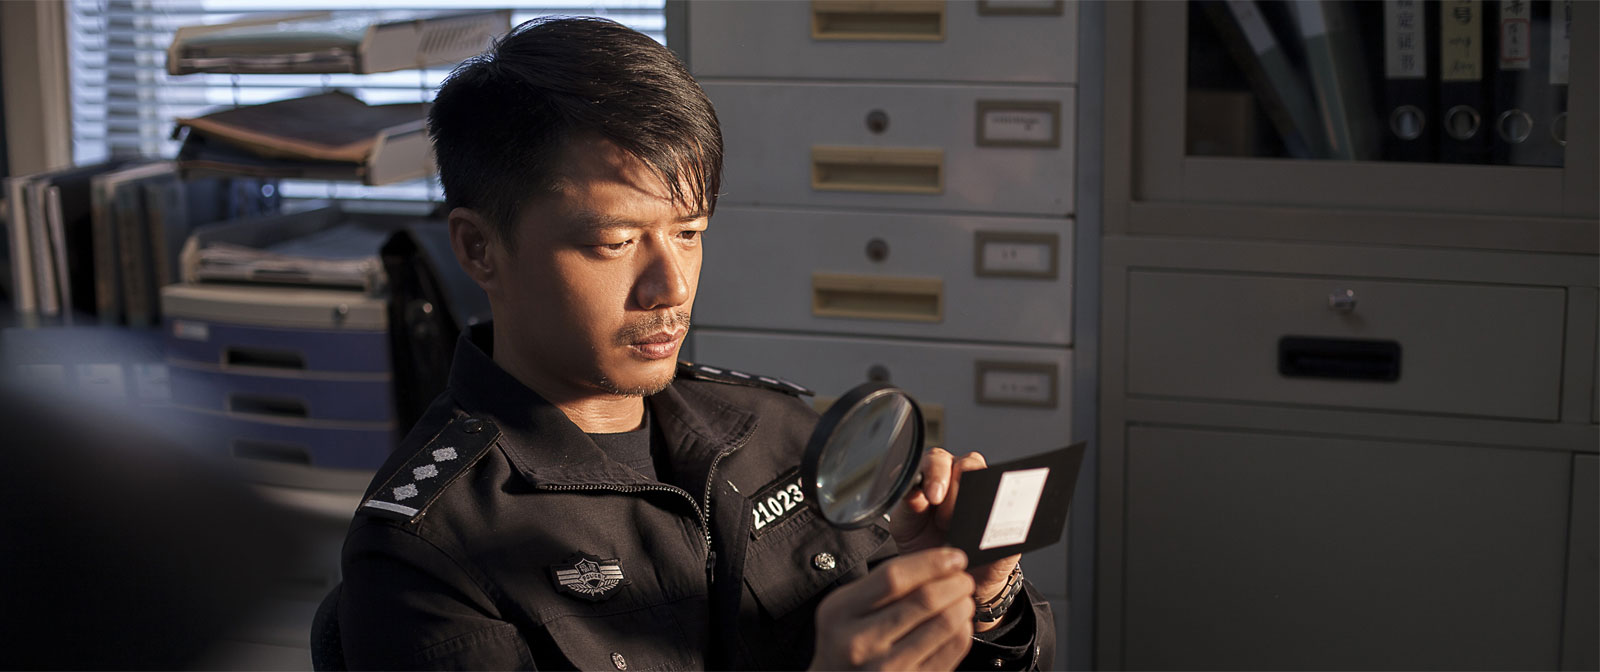 L'acteur Duan Yihong dans « The dead end »